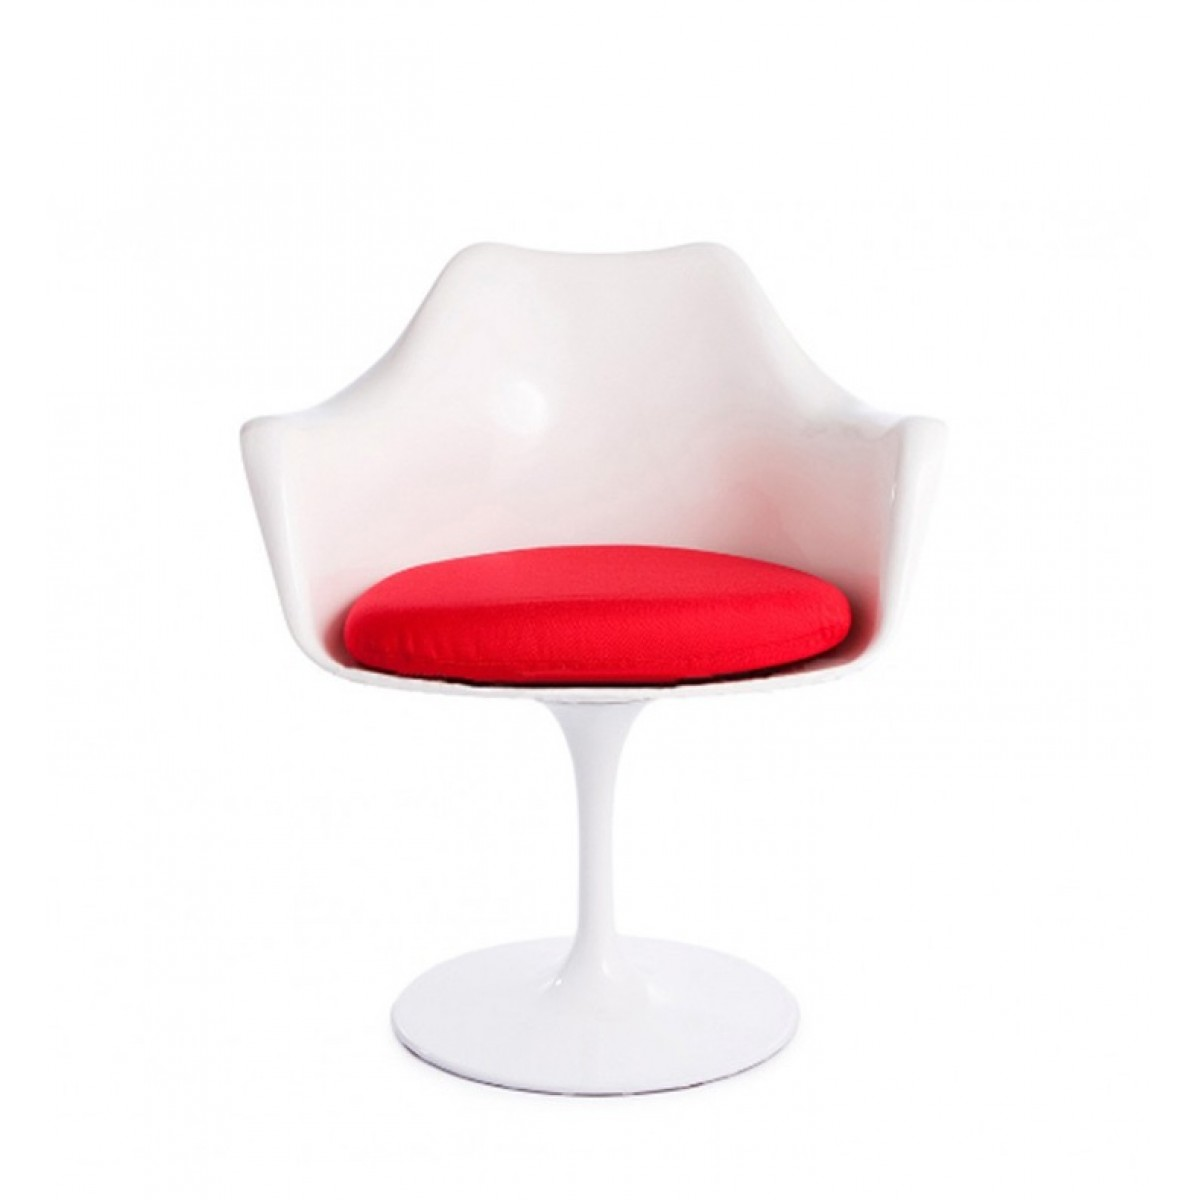 Eero saarinen style tulip arm chair white replica - Replica tulip chair ...